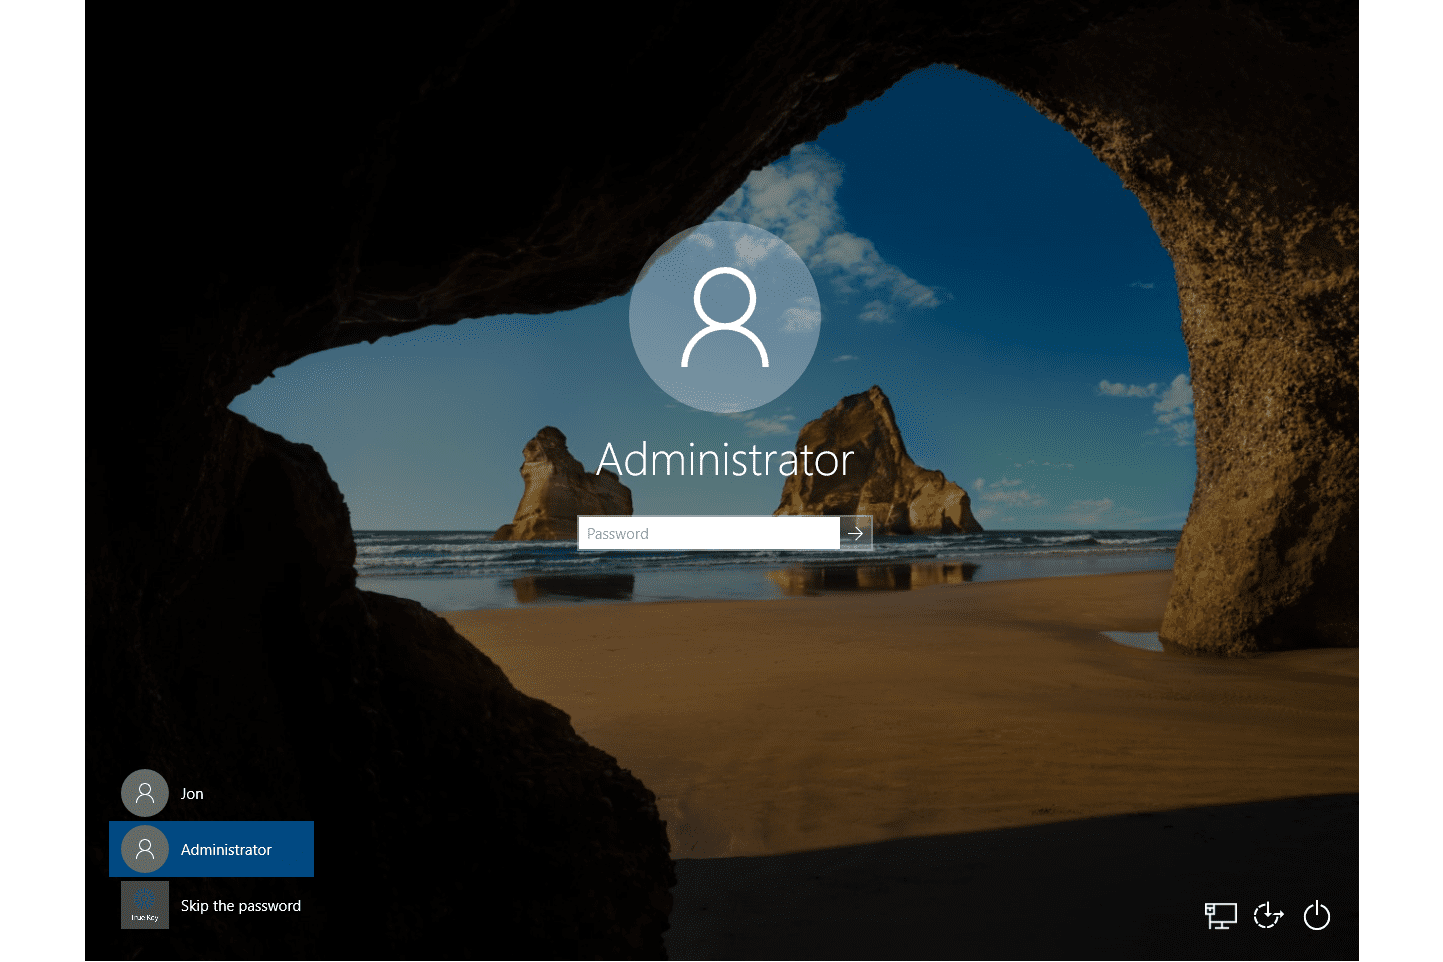 How can i reset my administrator password in windows 10 | 5